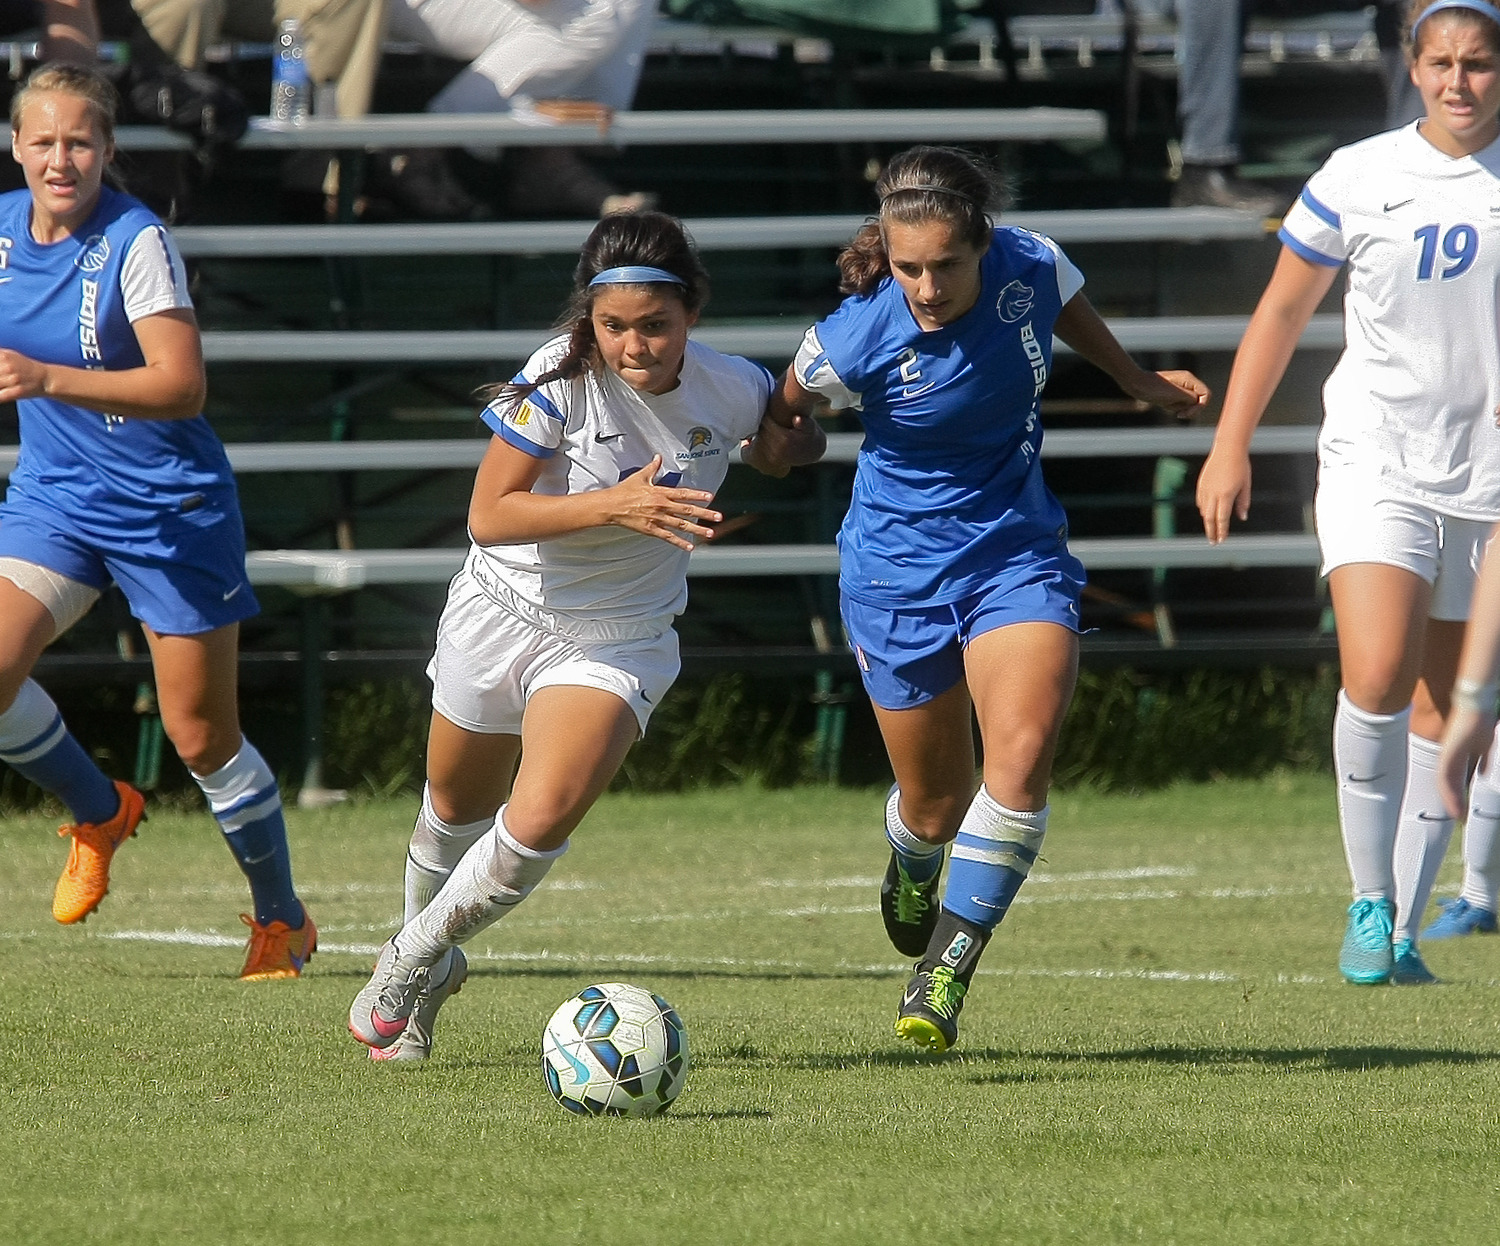 Alexis Venegas gave the Spartans a 1-0 lead in the seventh minute of the 2-1 win at New Mexico Friday night.